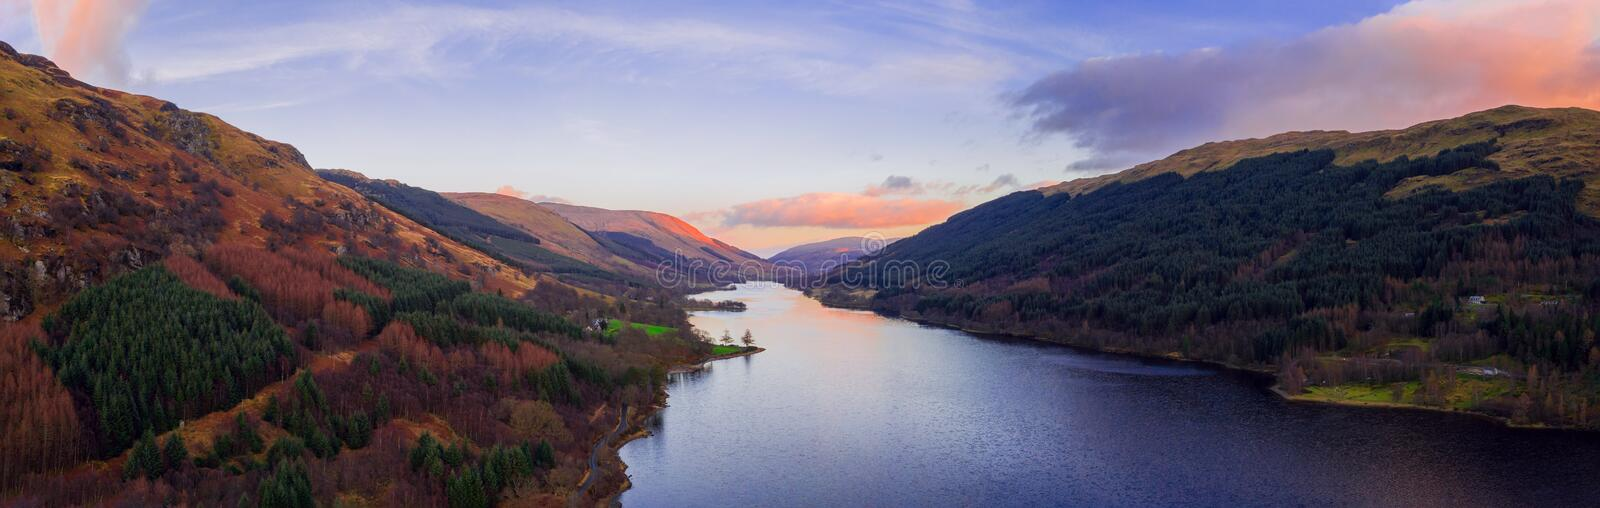 Scottish beautiful colorful sunset landscape with Loch Voil, mountains and forest at Loch Lomond & The Trossachs National Park stock images